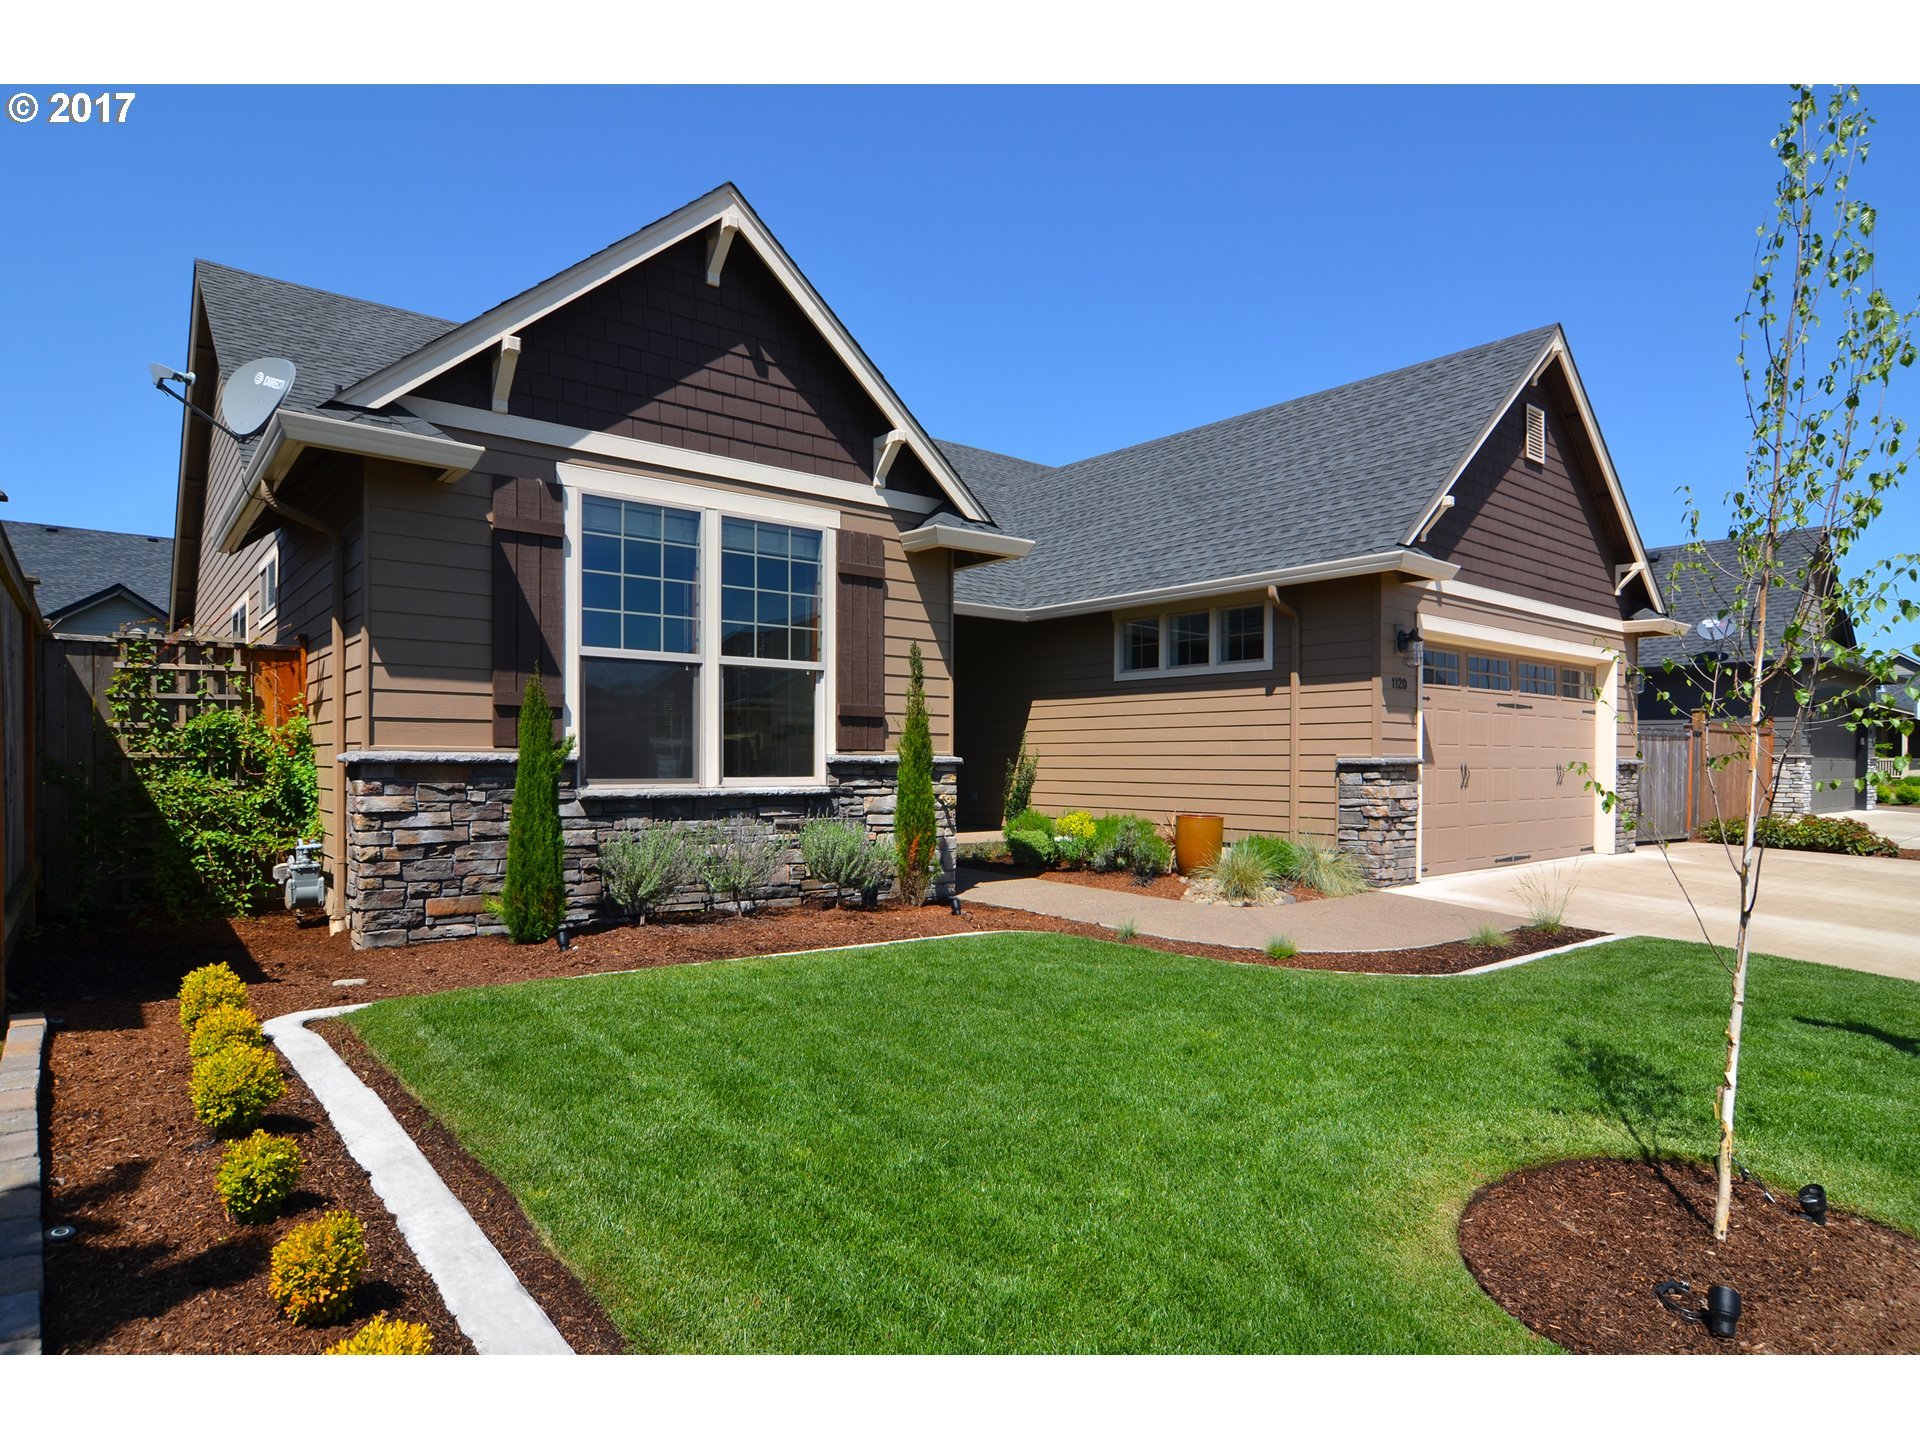 1120 S 40TH PL, Springfield, OR 97478